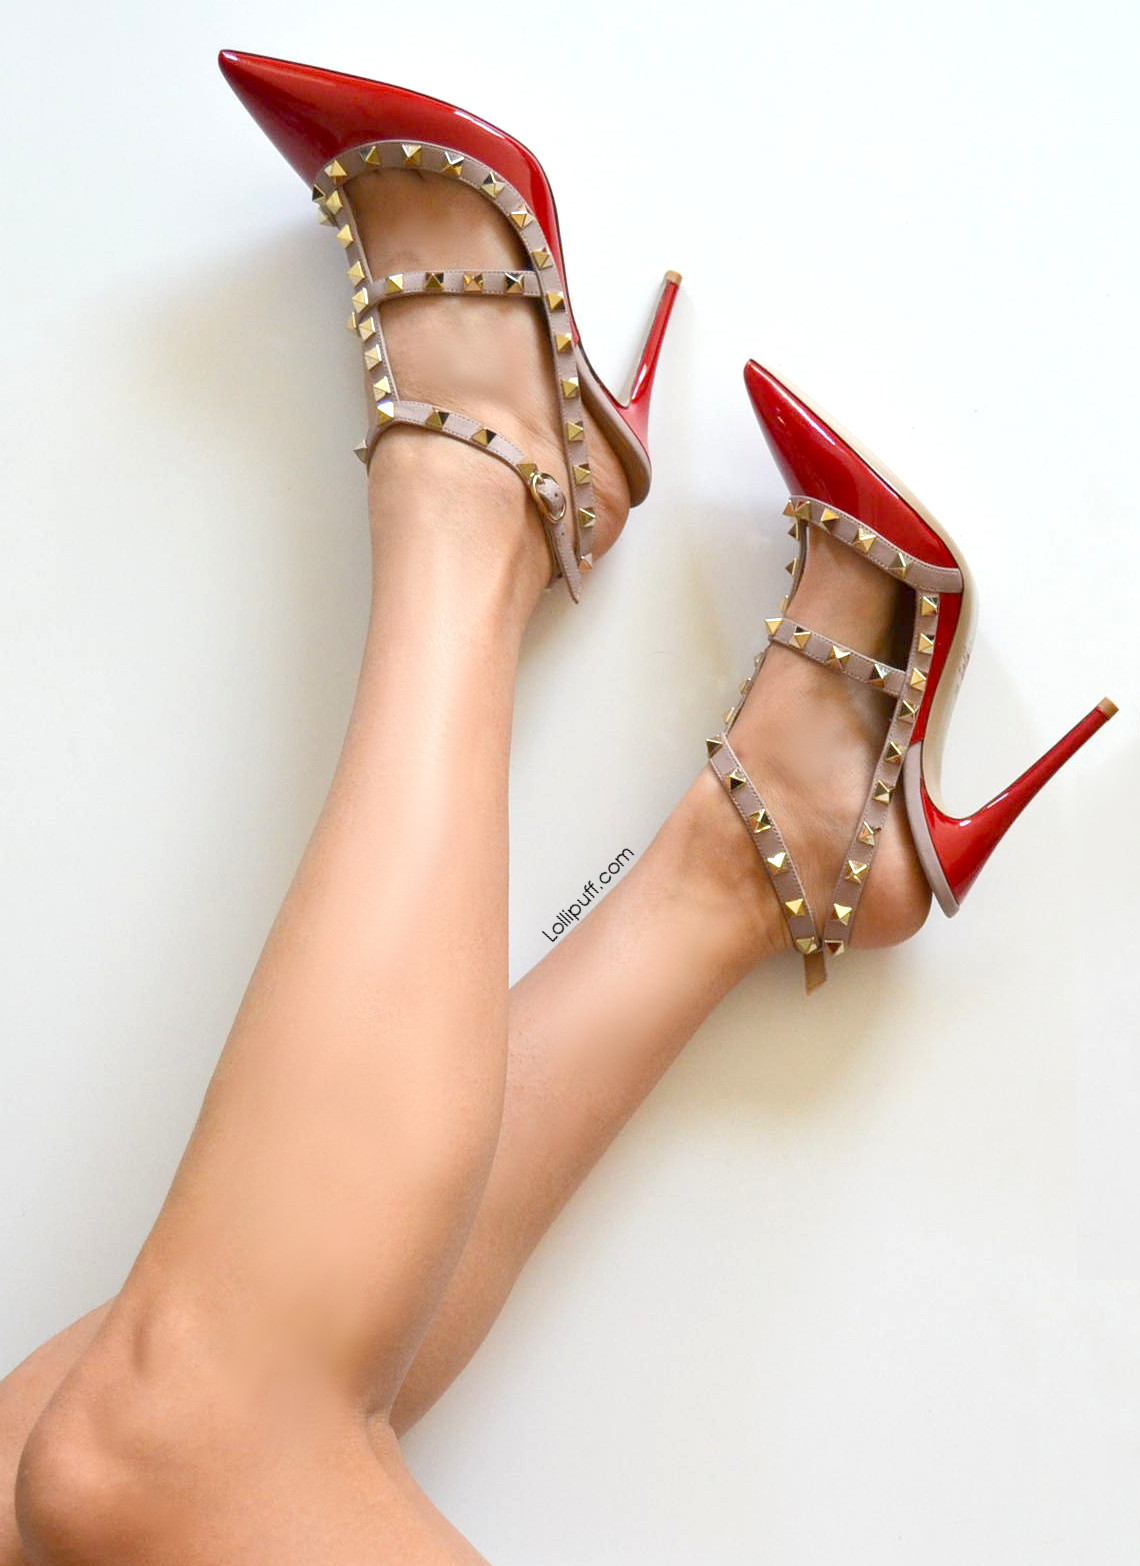 bare legs and feet wearing Valentino rockstud high heels